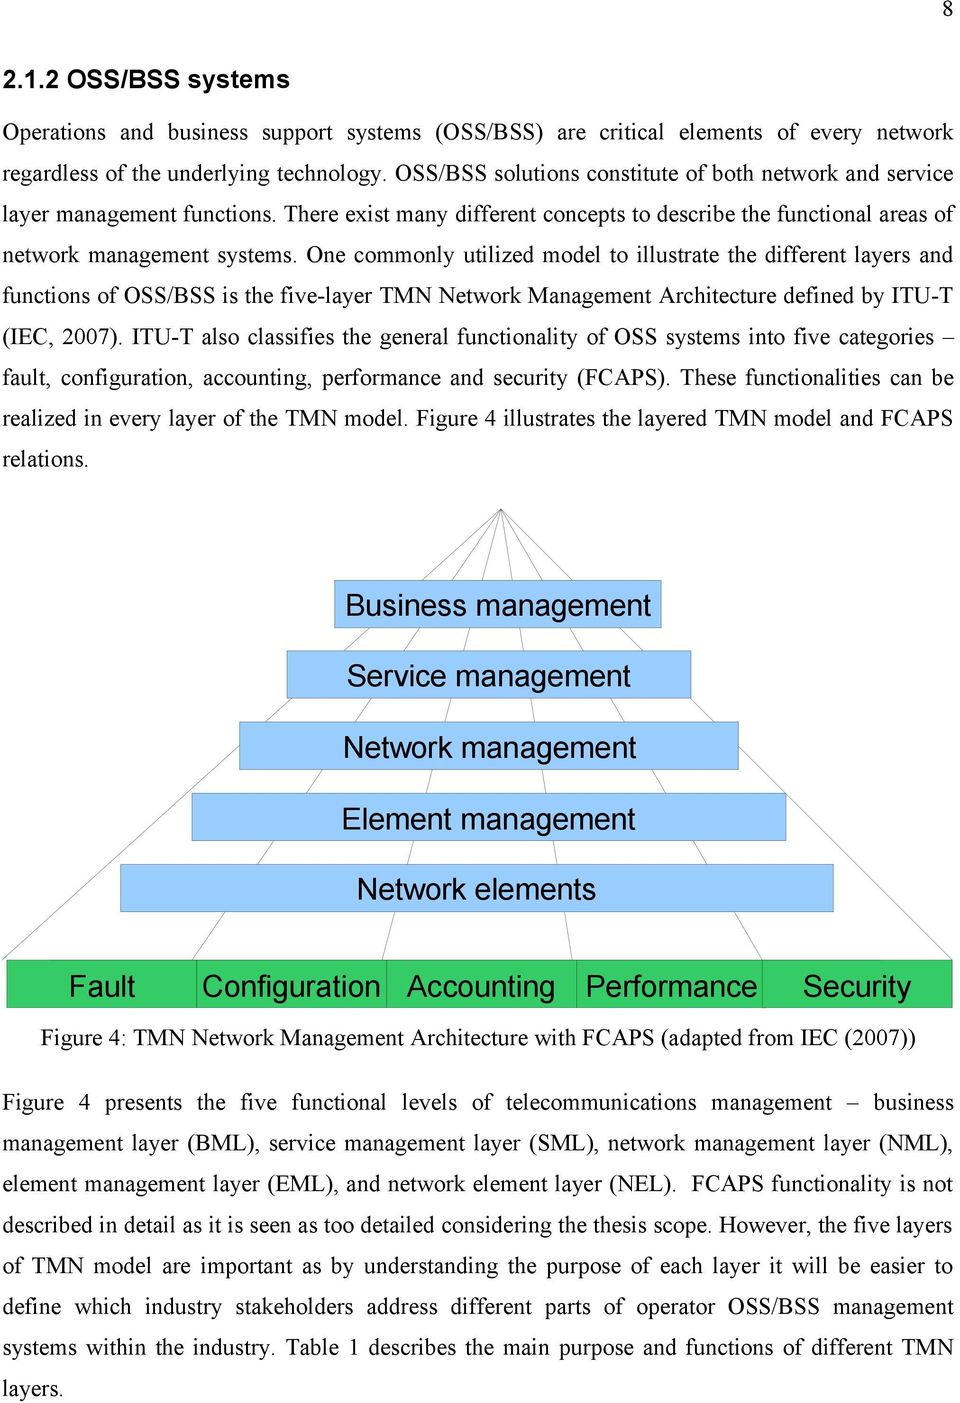 One commonly utilized model to illustrate the different layers and functions of OSS/BSS is the five-layer TMN Network Management Architecture defined by ITU-T (IEC, 2007).